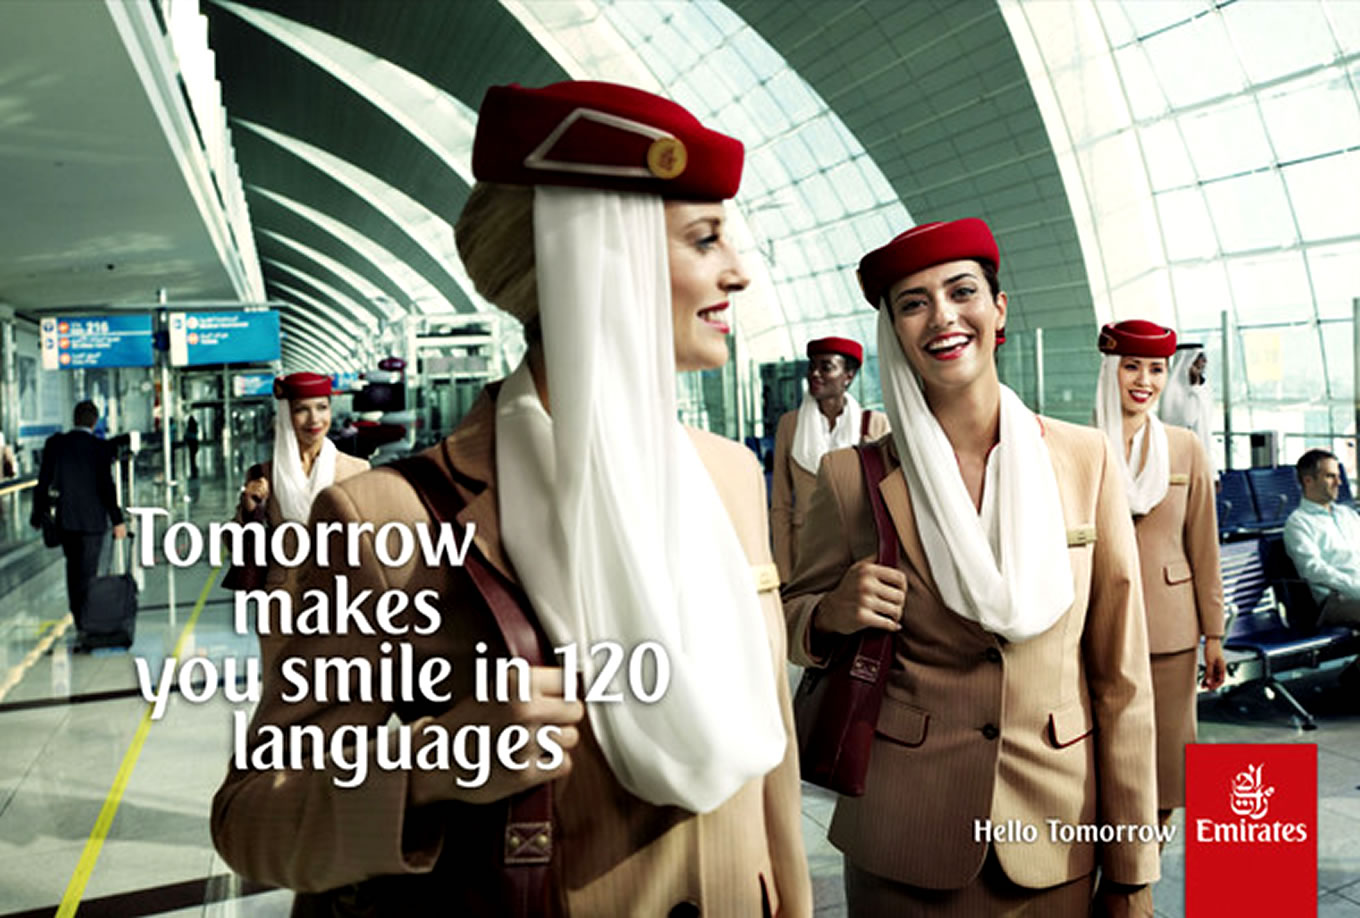 Smile in 120 Languages, Hello Tomorrow Marketing Campaign by Emirates Airlines